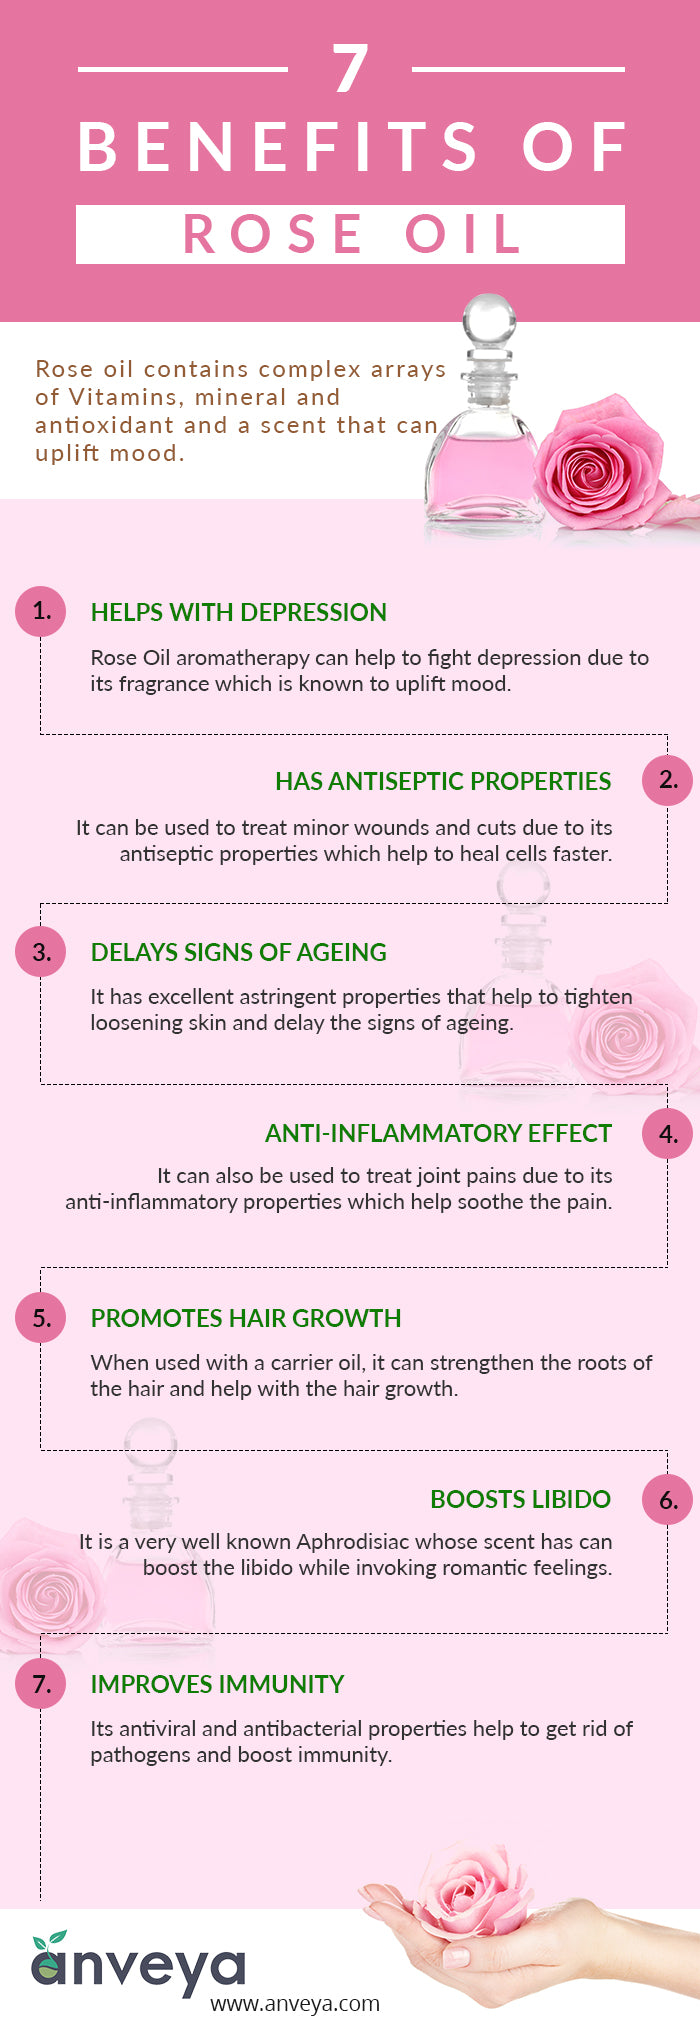 7 Benefits of Rose Oil